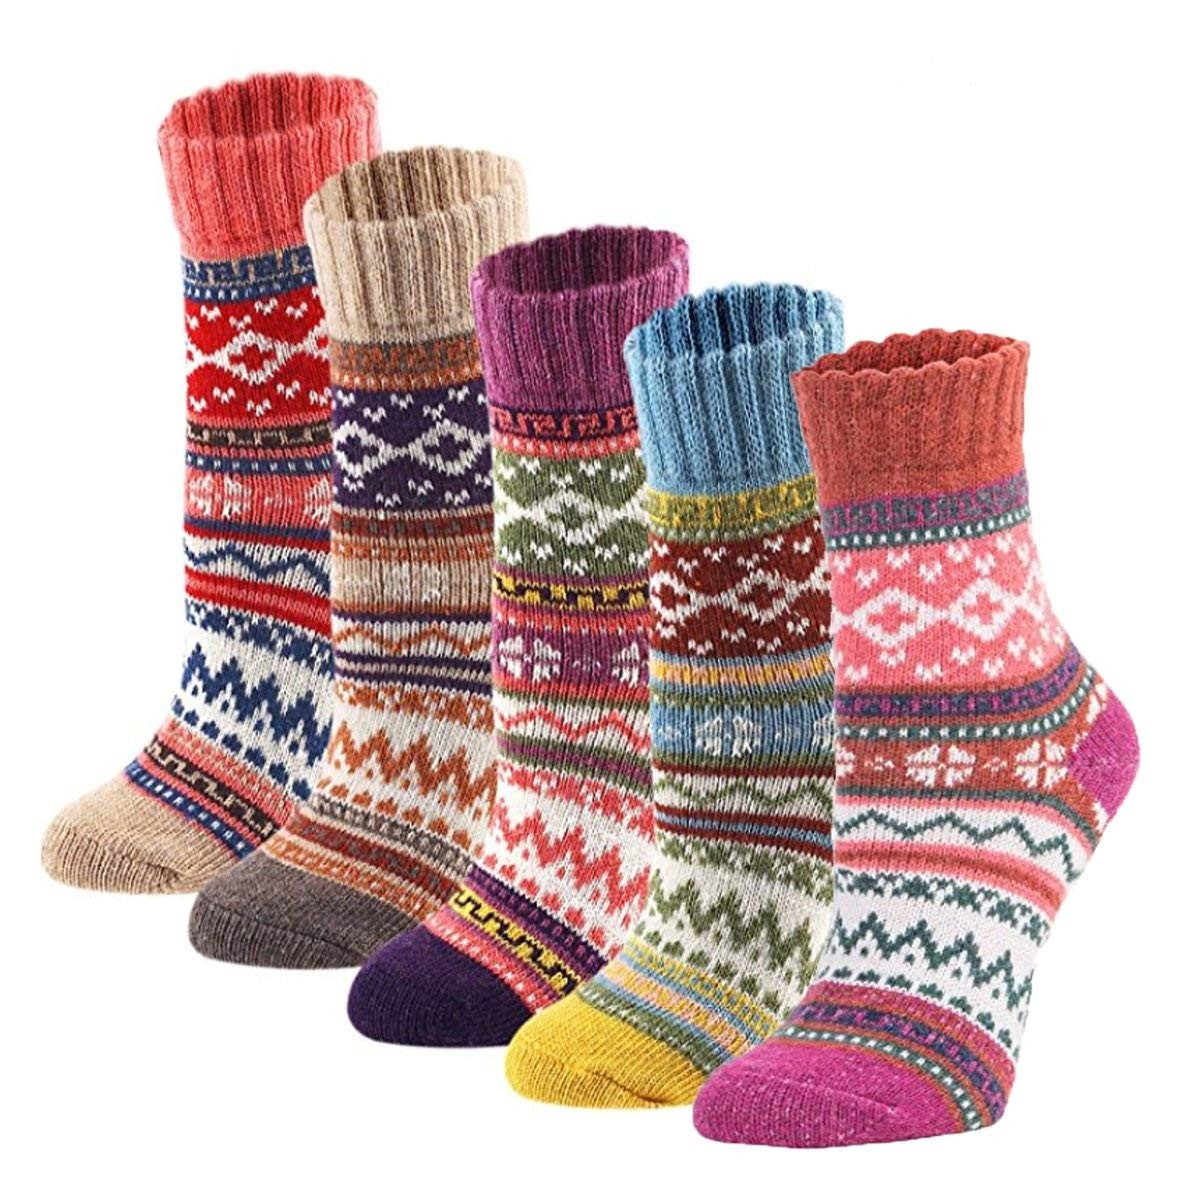 Socks Women Winter Womens Vintage Winter Soft Warm Thick Cold Knit Wool Crew Socks Geometry Print Comfortable Mujer Invierno 10